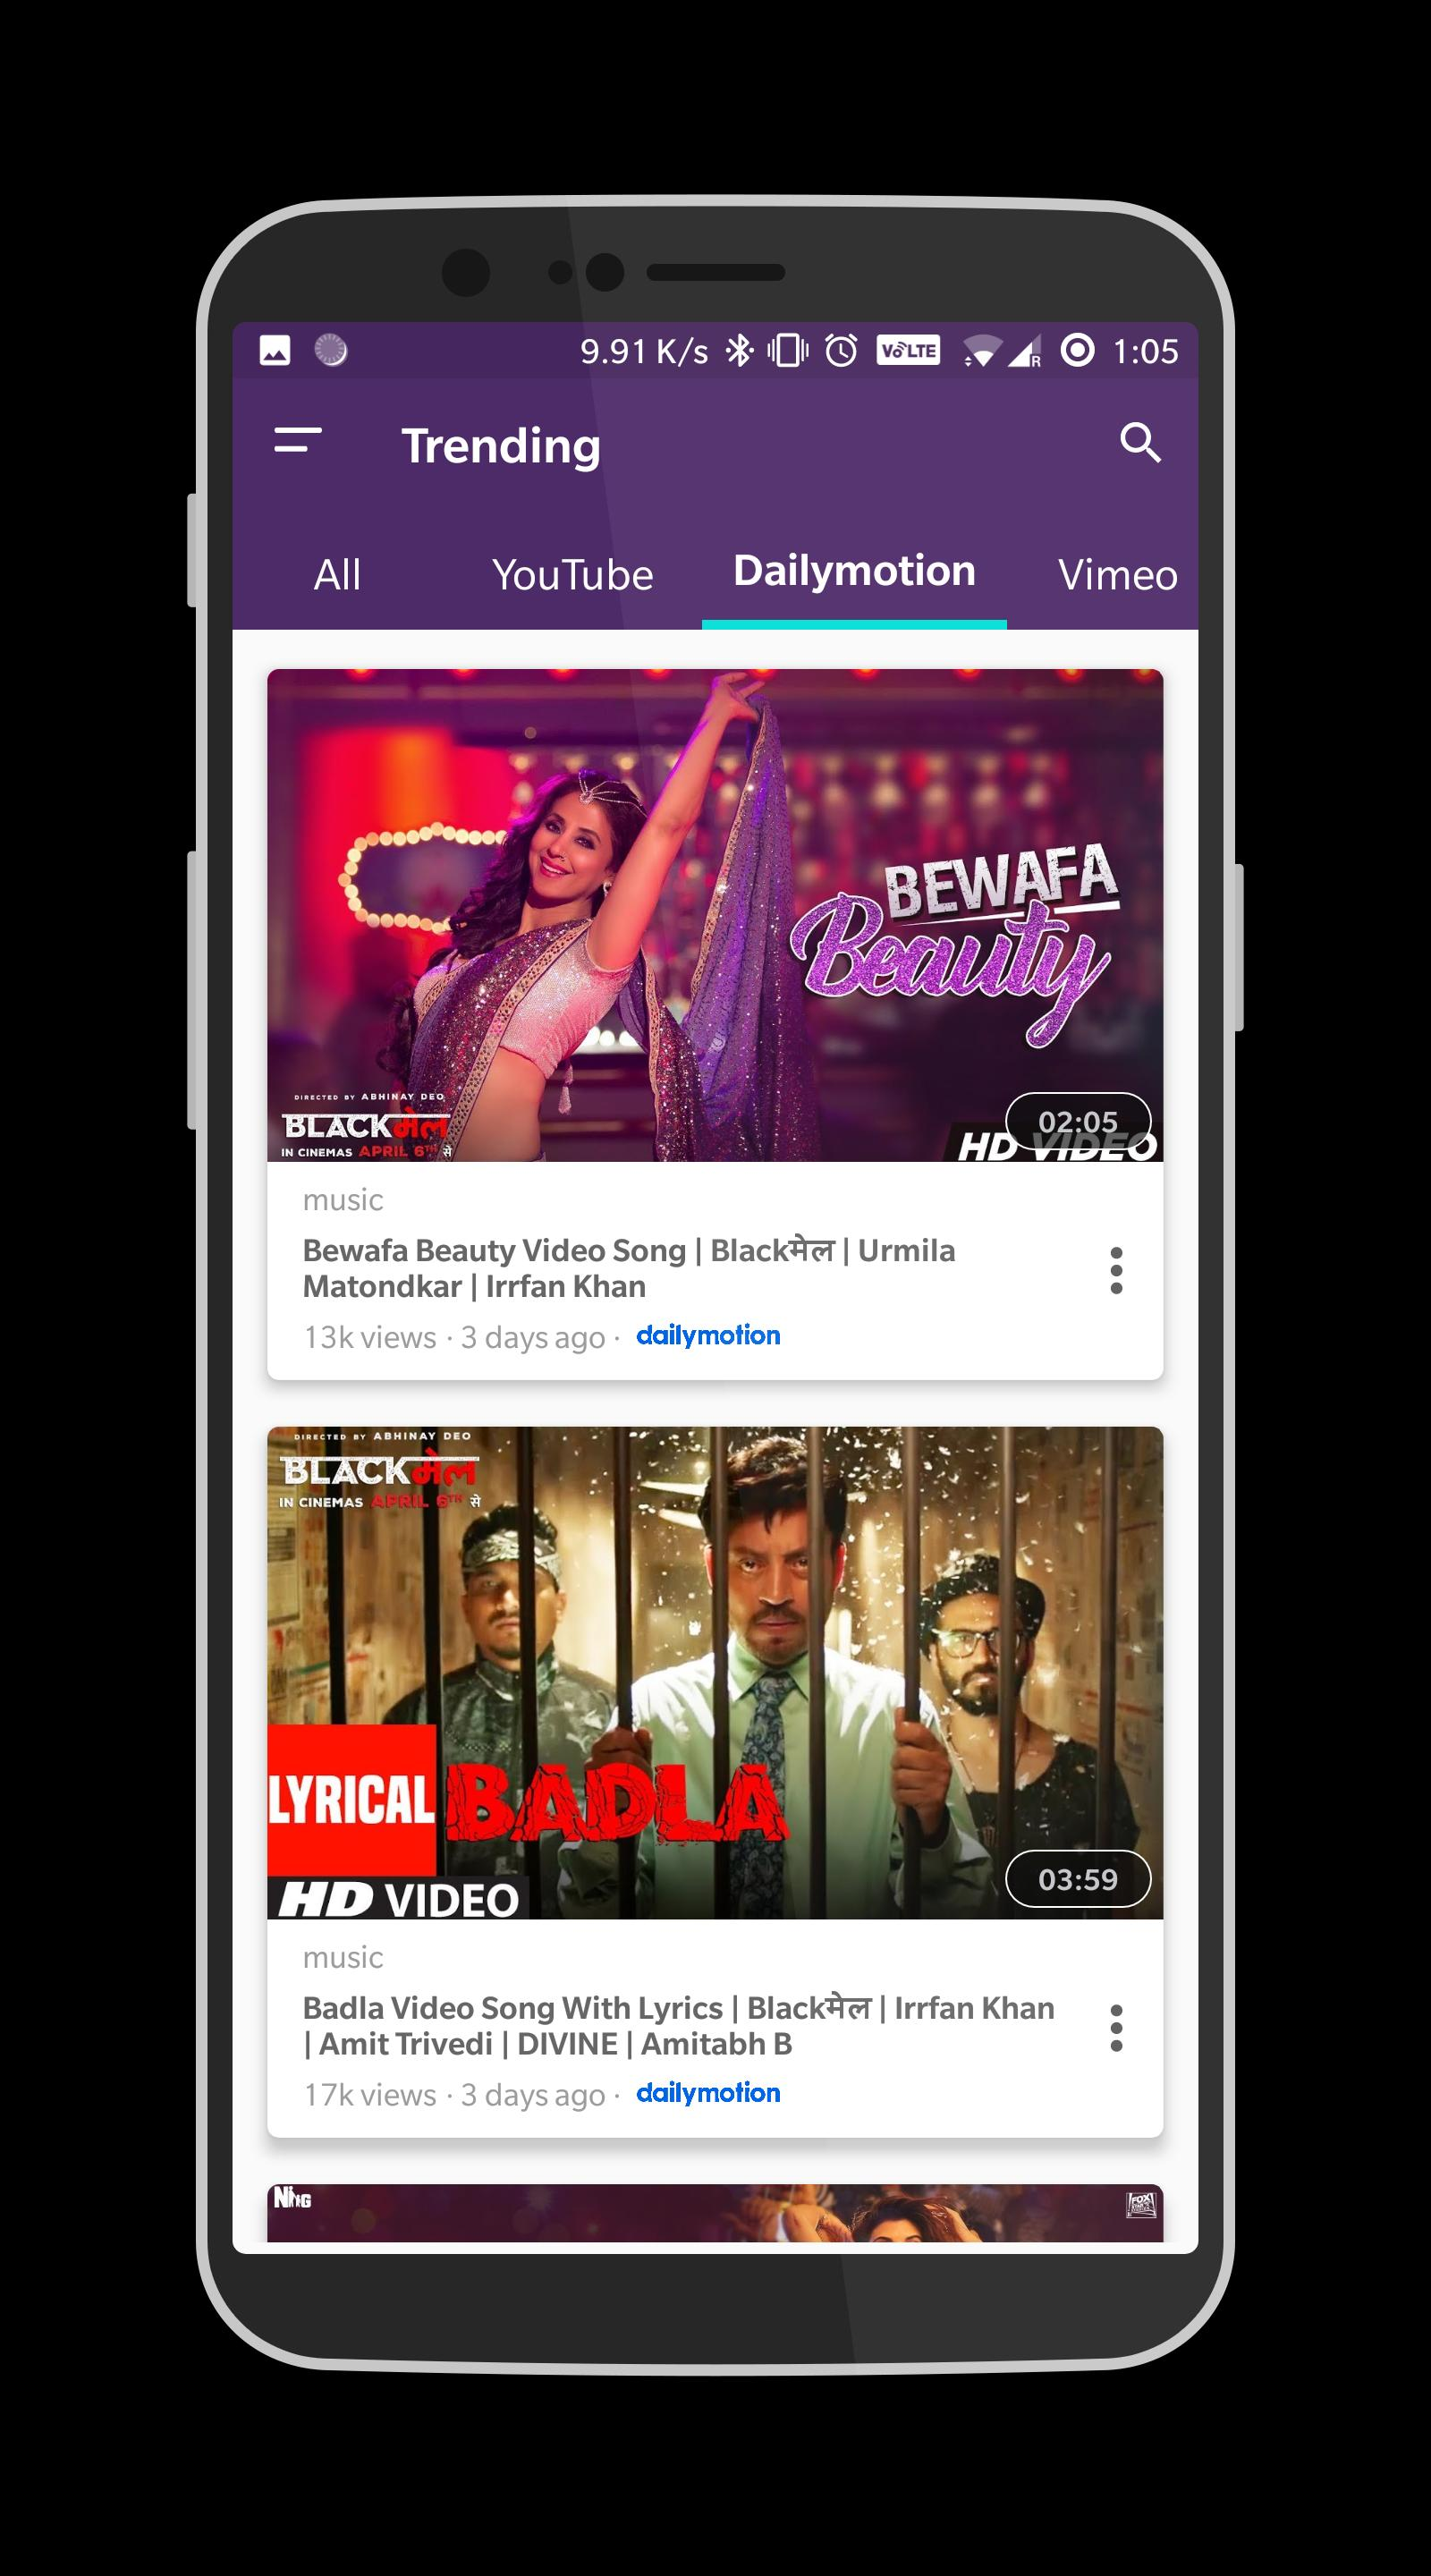 Invent Video - The Video Meta Search & Player App for